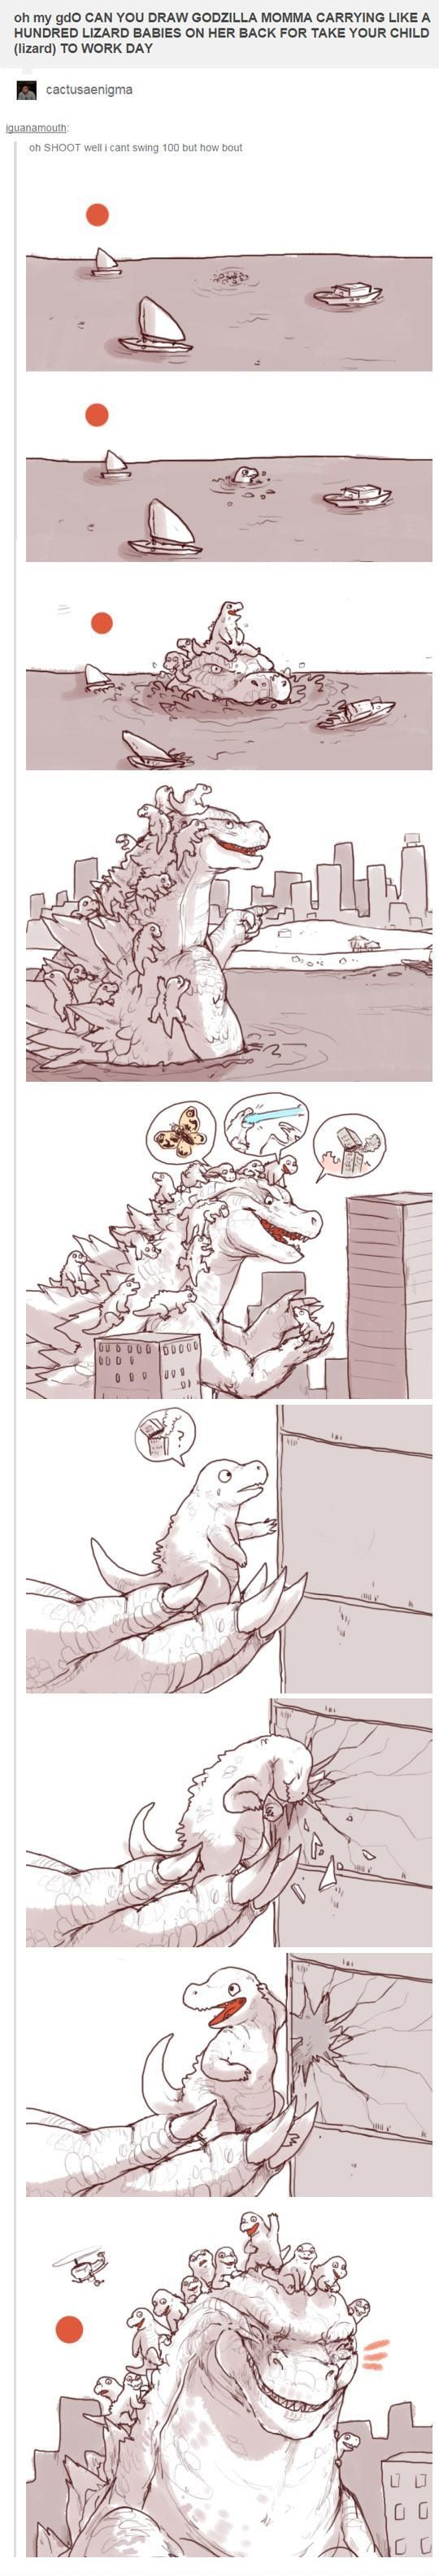 Godzilla participates in take your kid to work day